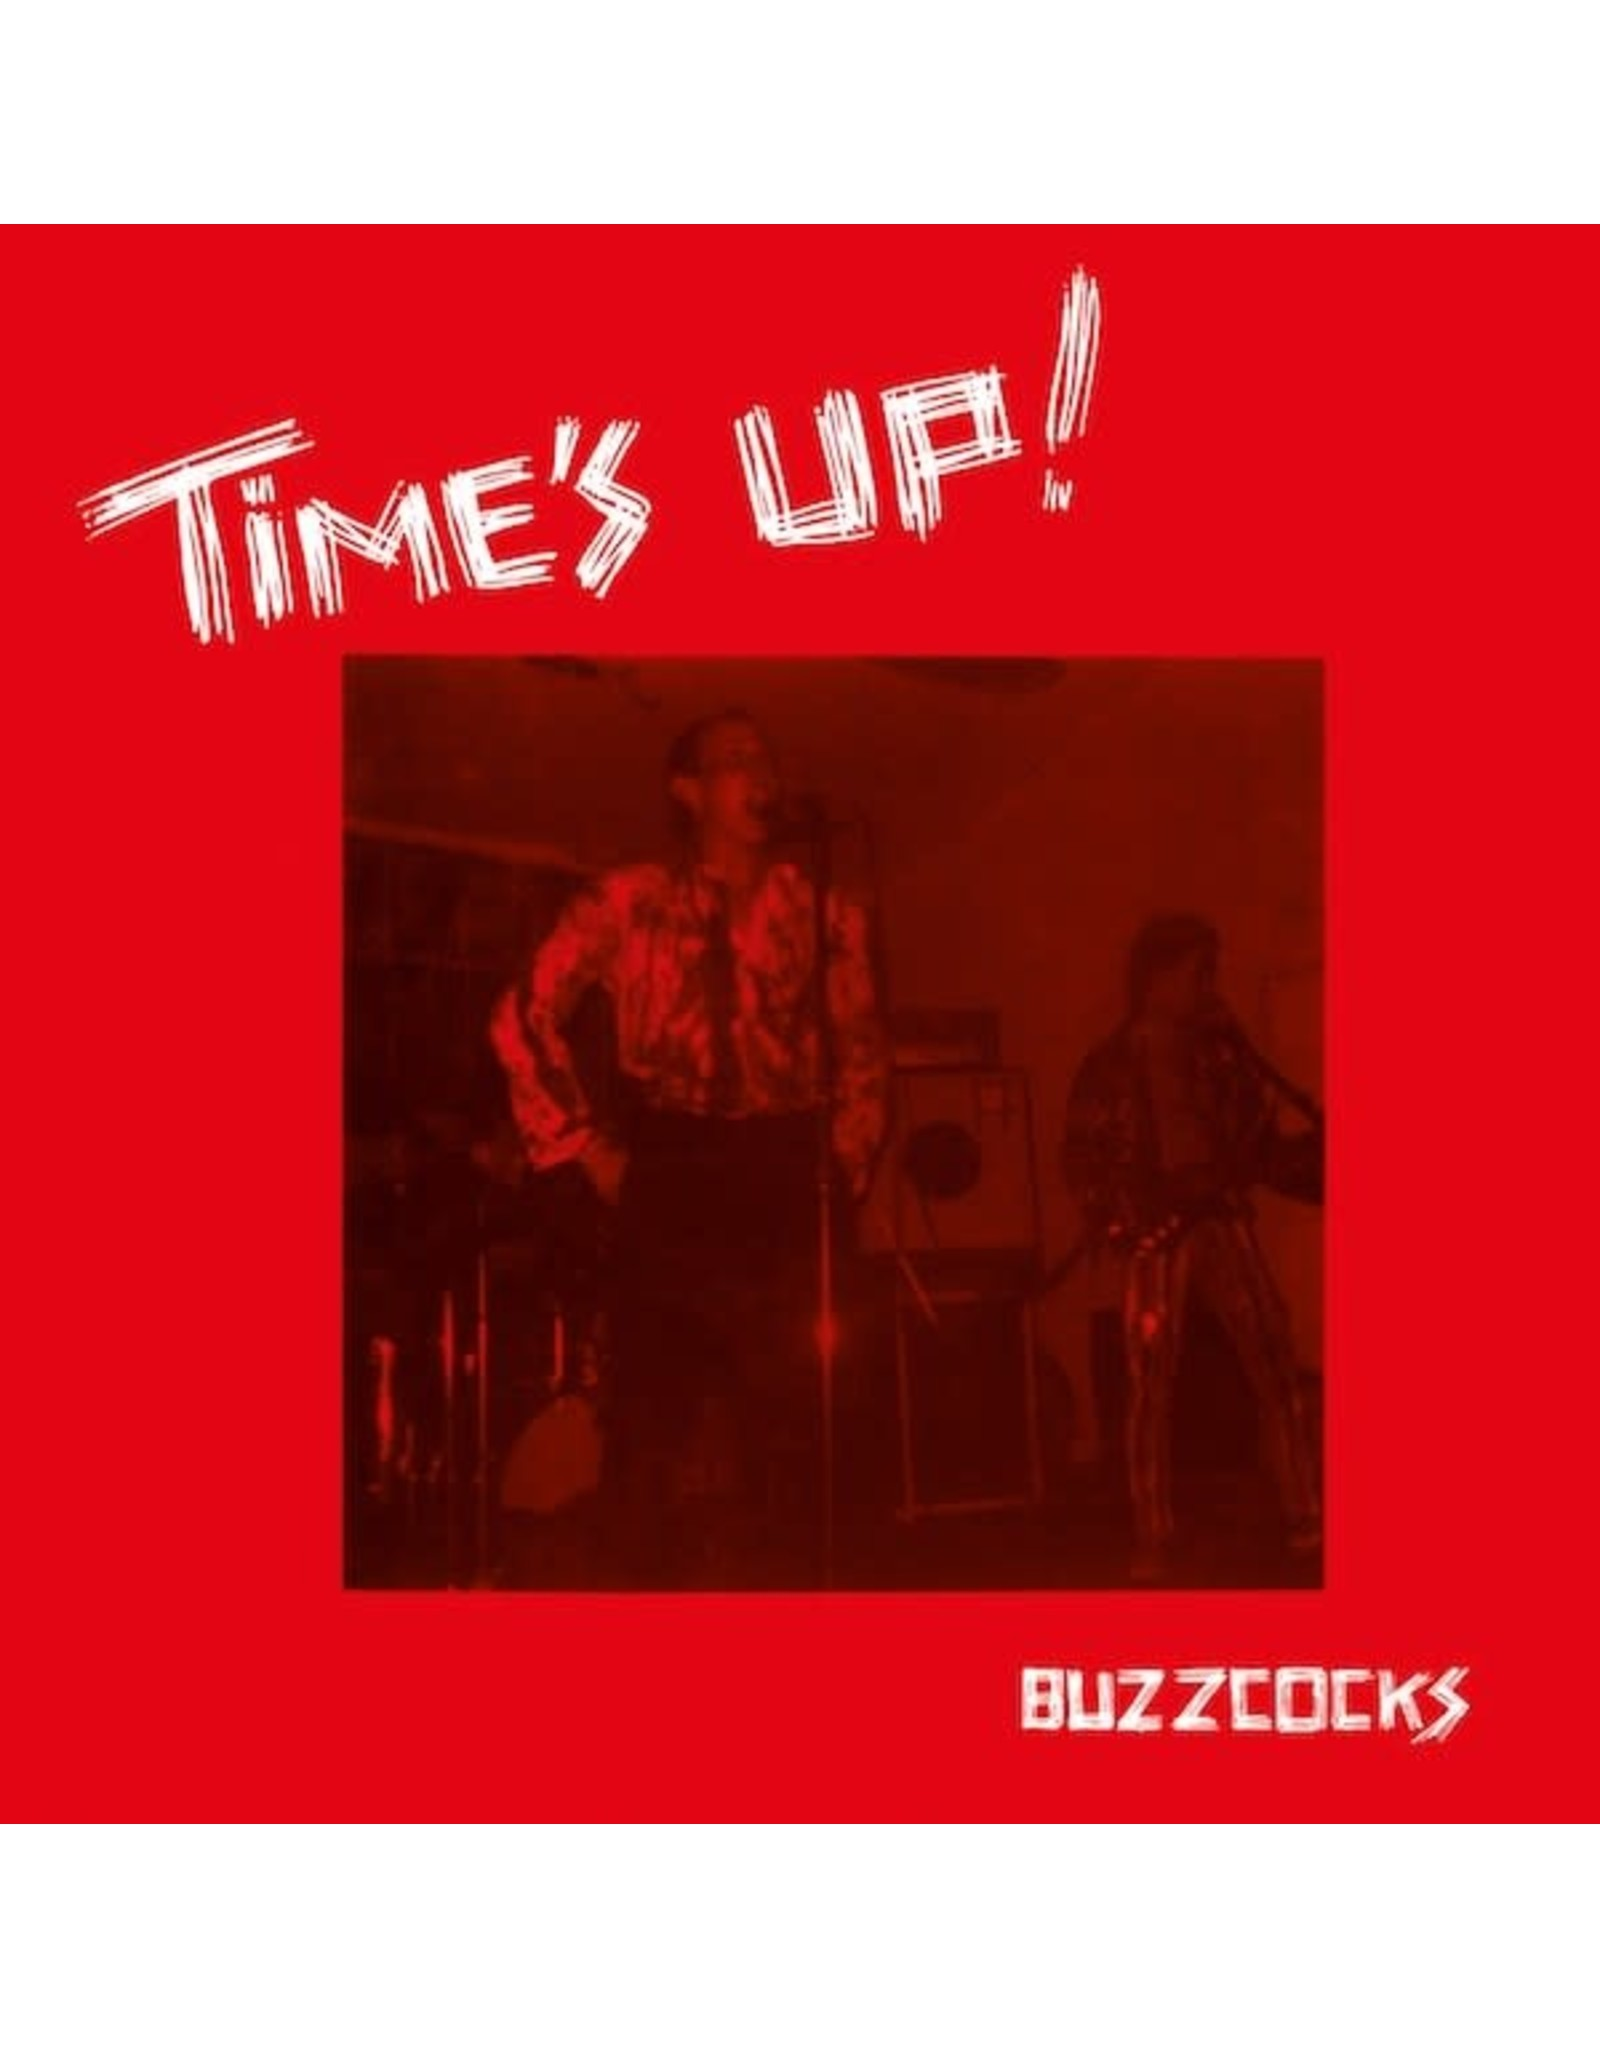 Buzzcocks - Times Up!